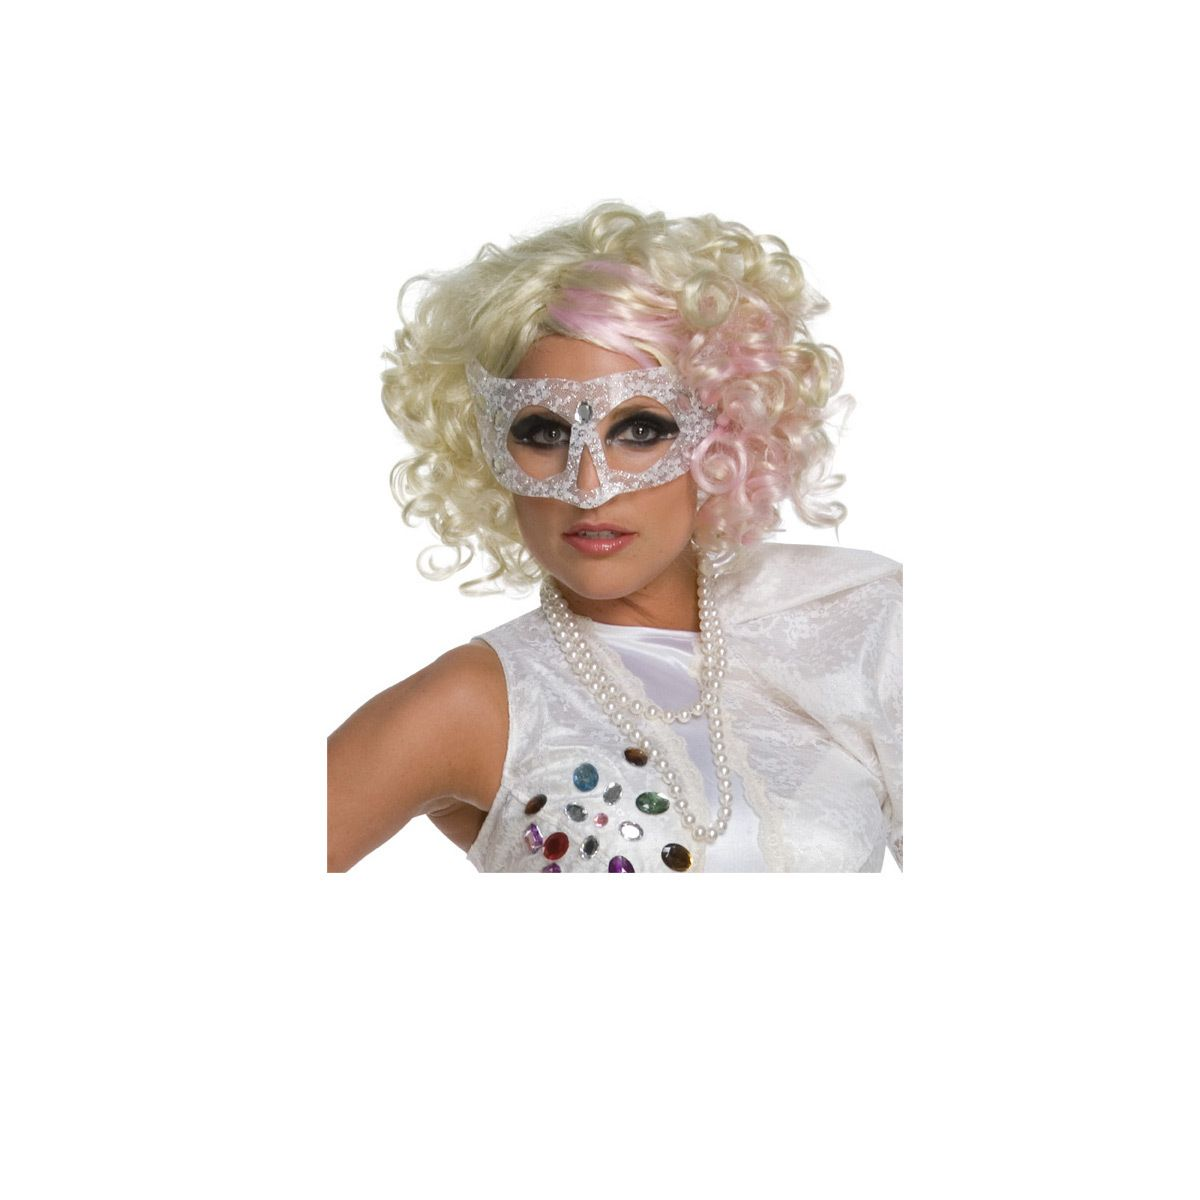 lady gaga curly blonde adult wig with pink highlights gaga curly blonde adult wig with pink highlights category costumes women hats and wigs - Halloween Costumes With Blonde Wig